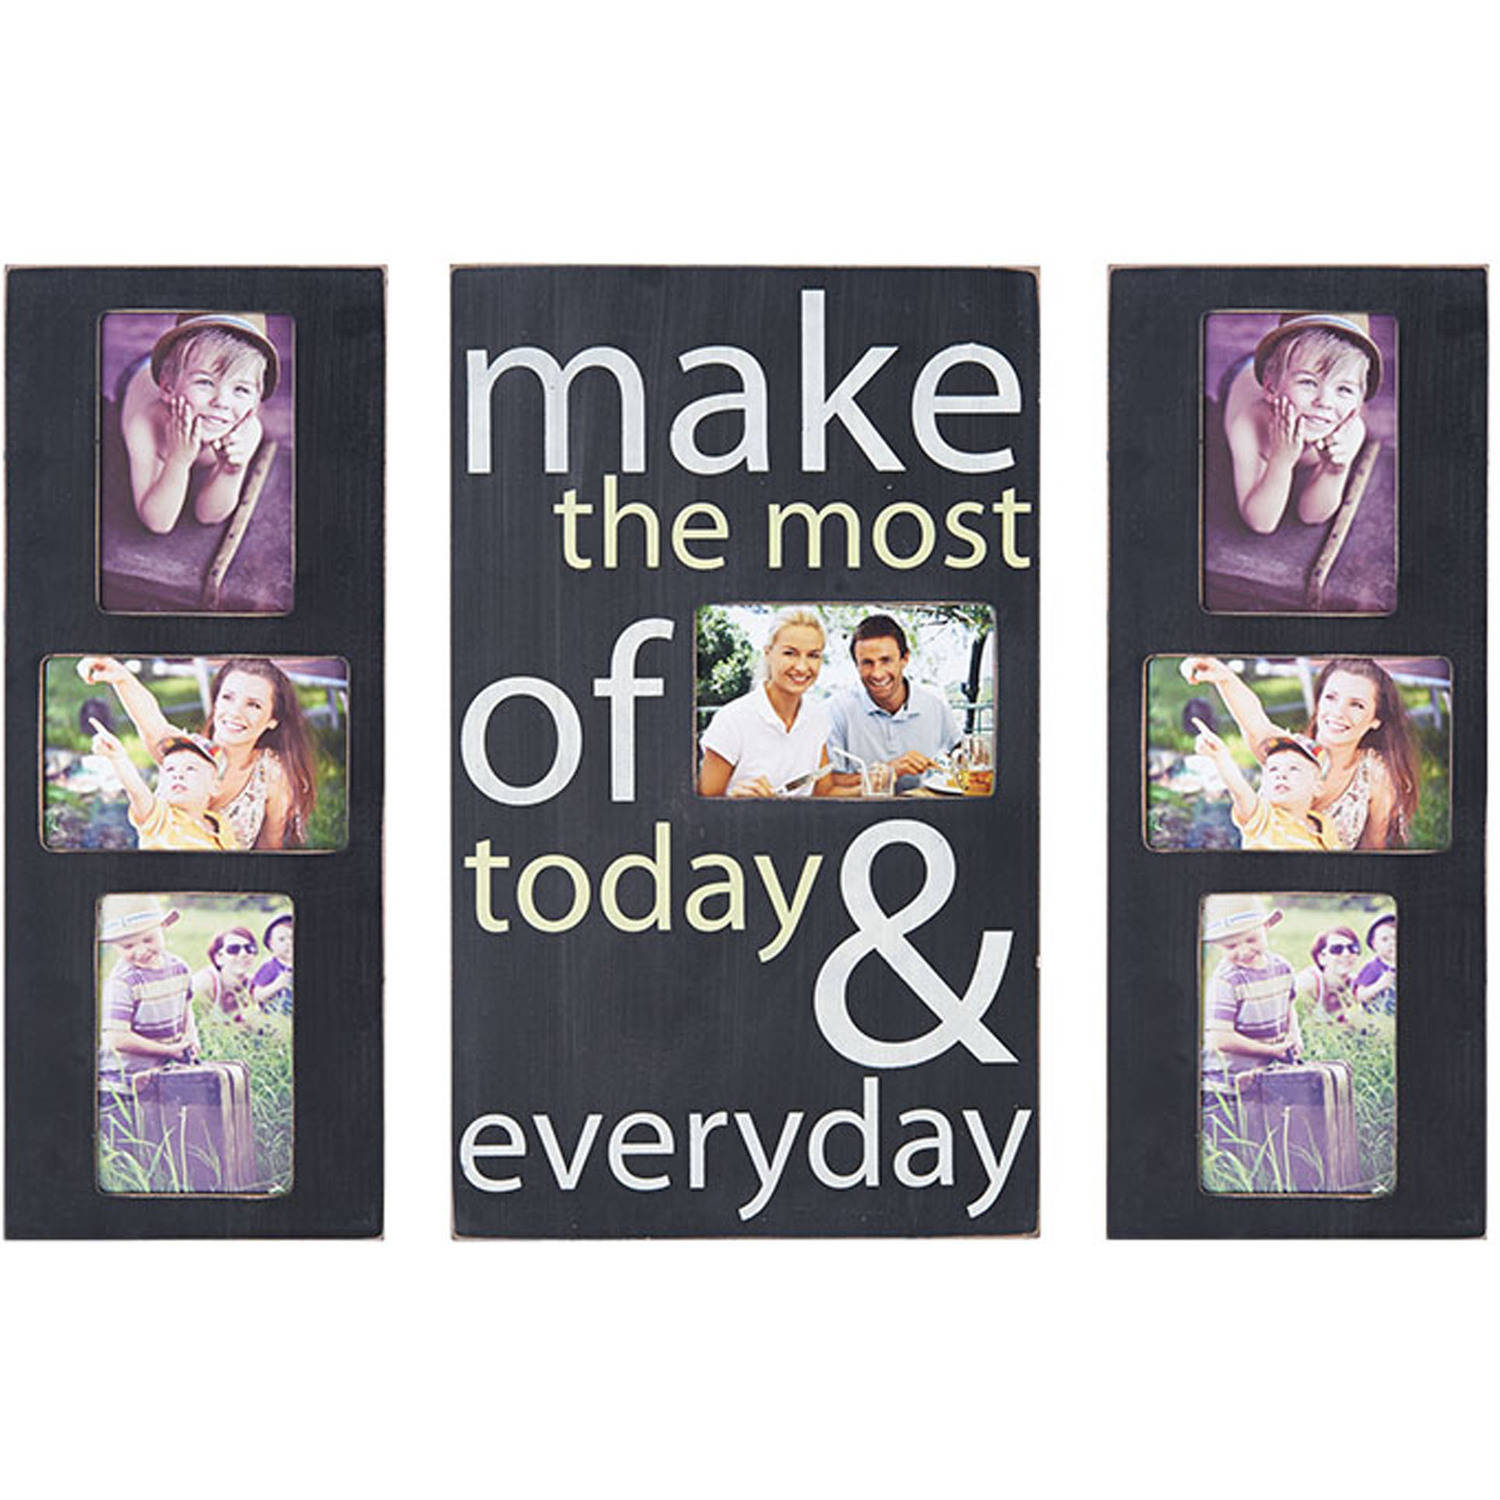 Melannco Sentiment Collage Plaque Set Make, The Most Of Today And Everyday, Set of 3